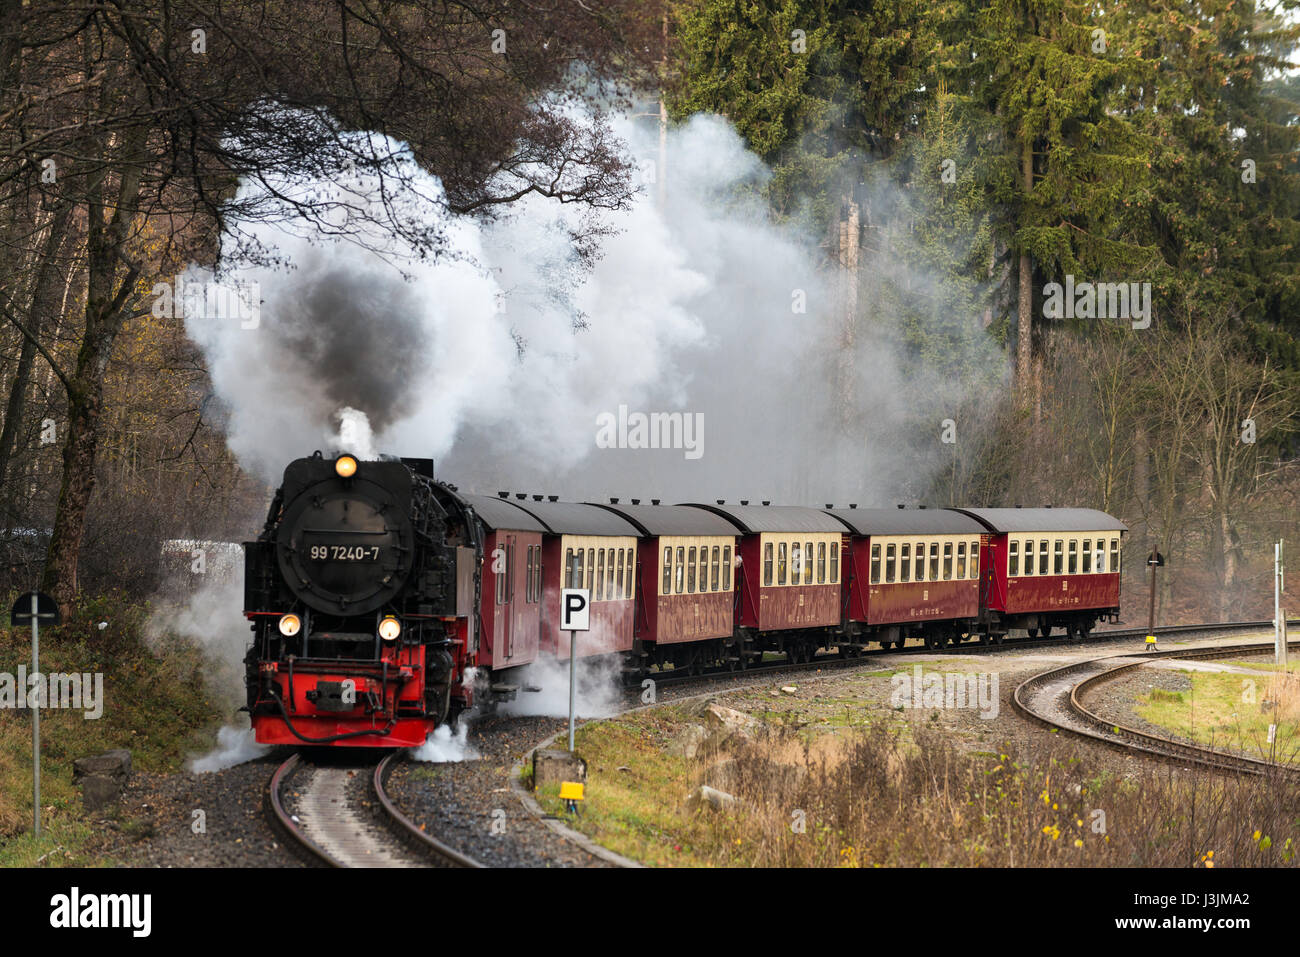 Harz montains, germany, Nov. 8.2015 Steam train with train in the mountains Stock Photo